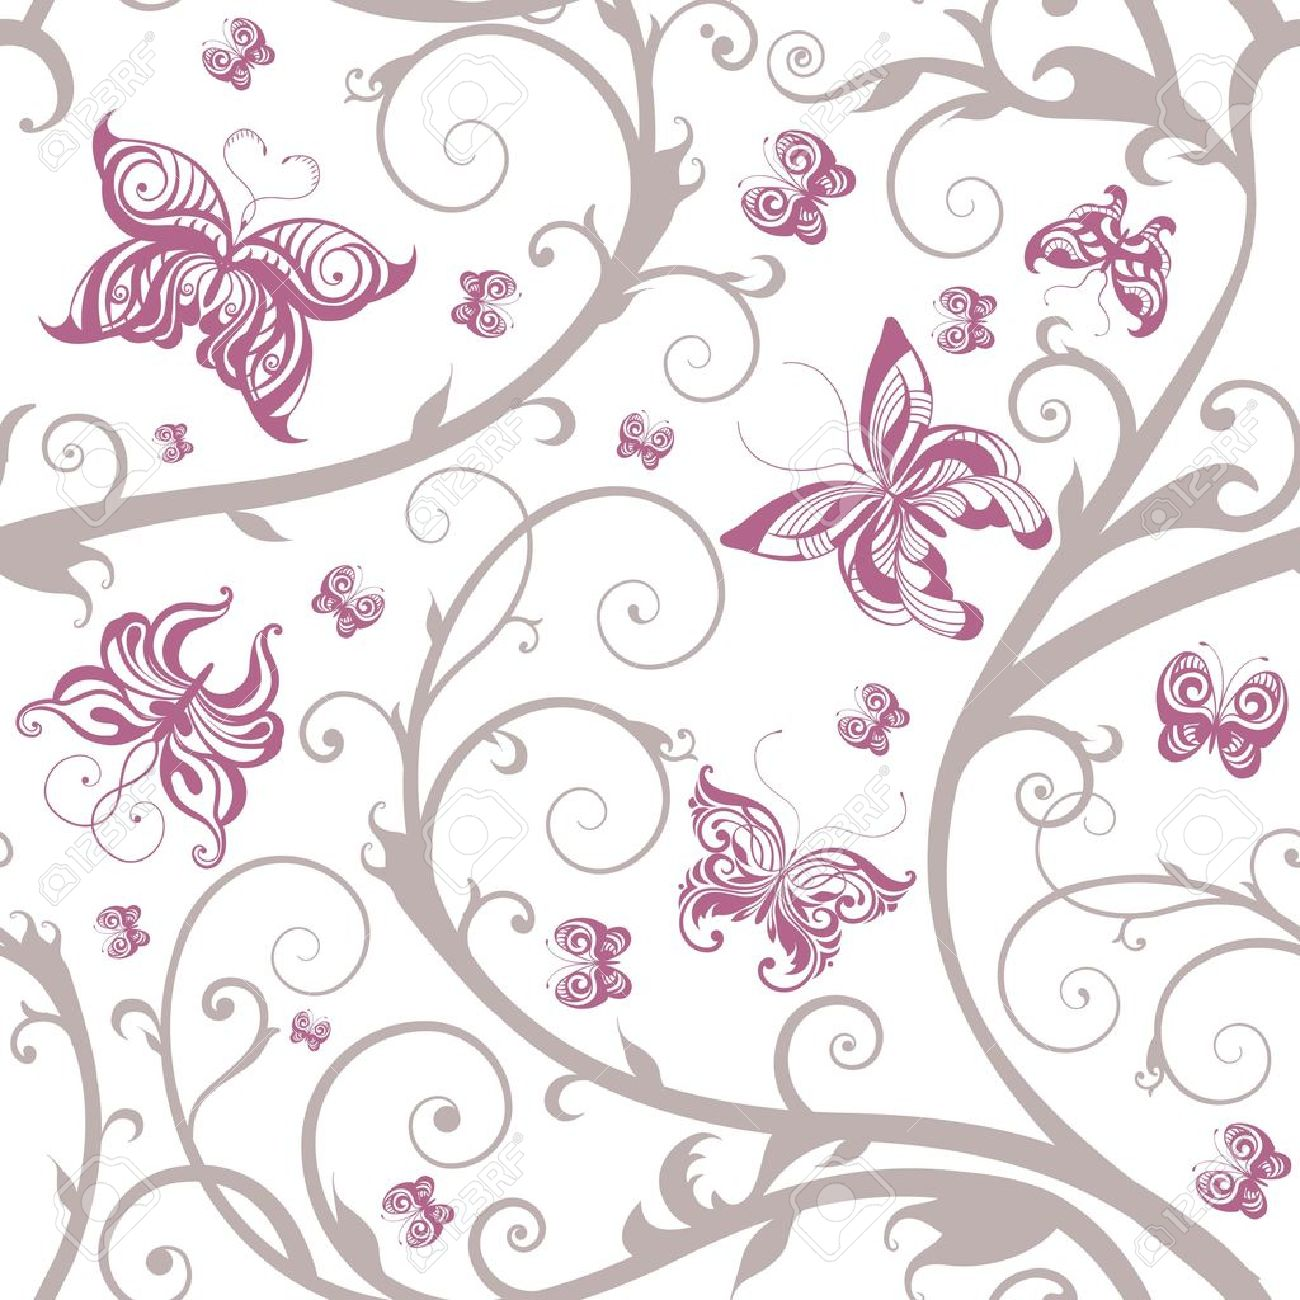 Romantic floral butterfly seamless pattern - 11655678